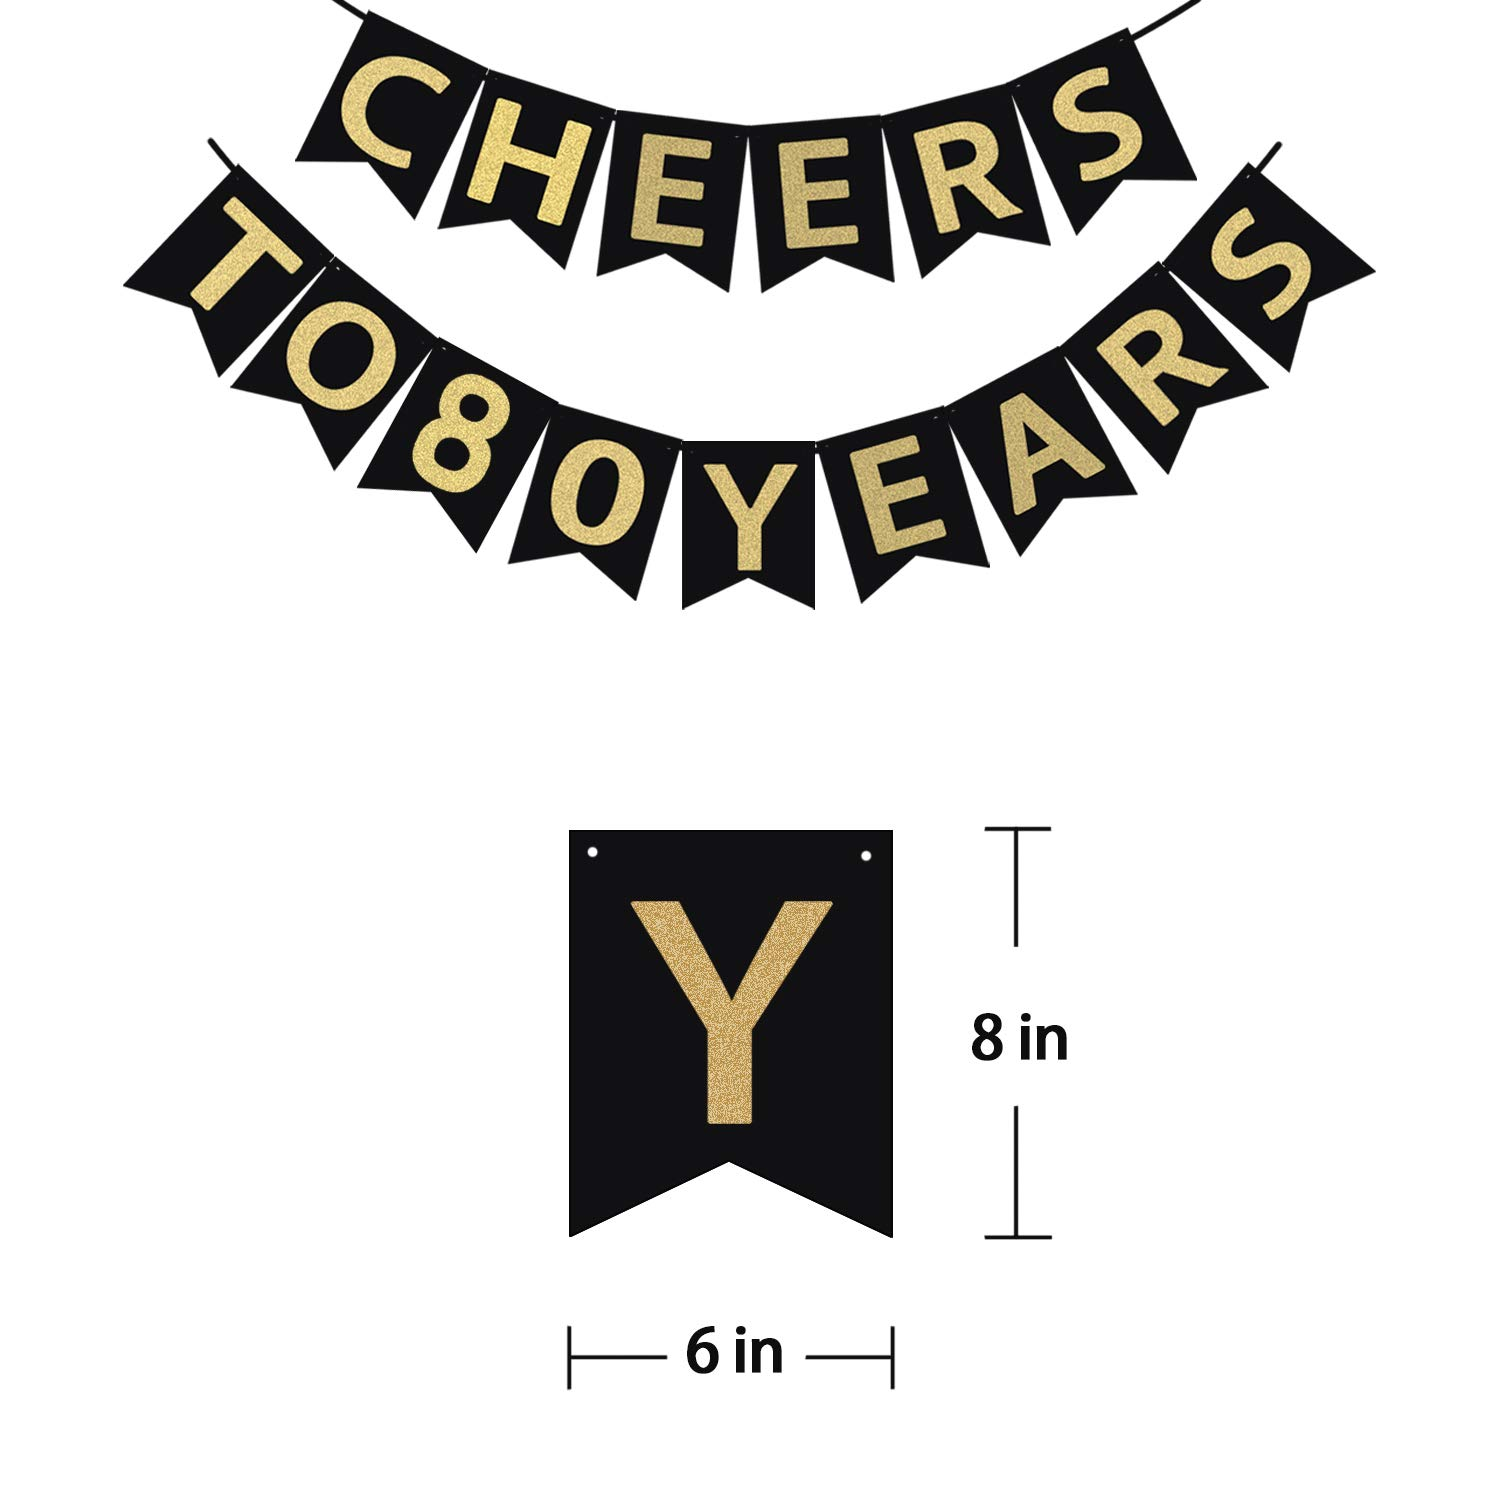 Tuoyi 80th Birthday Party Decorations KIT - Cheers to 80 Years Banner, Sparkling Celebration 80 Hanging Swirls, Perfect 80 Years Old Party Supplies 80th Anniversary Decorations by Tuoyi (Image #2)